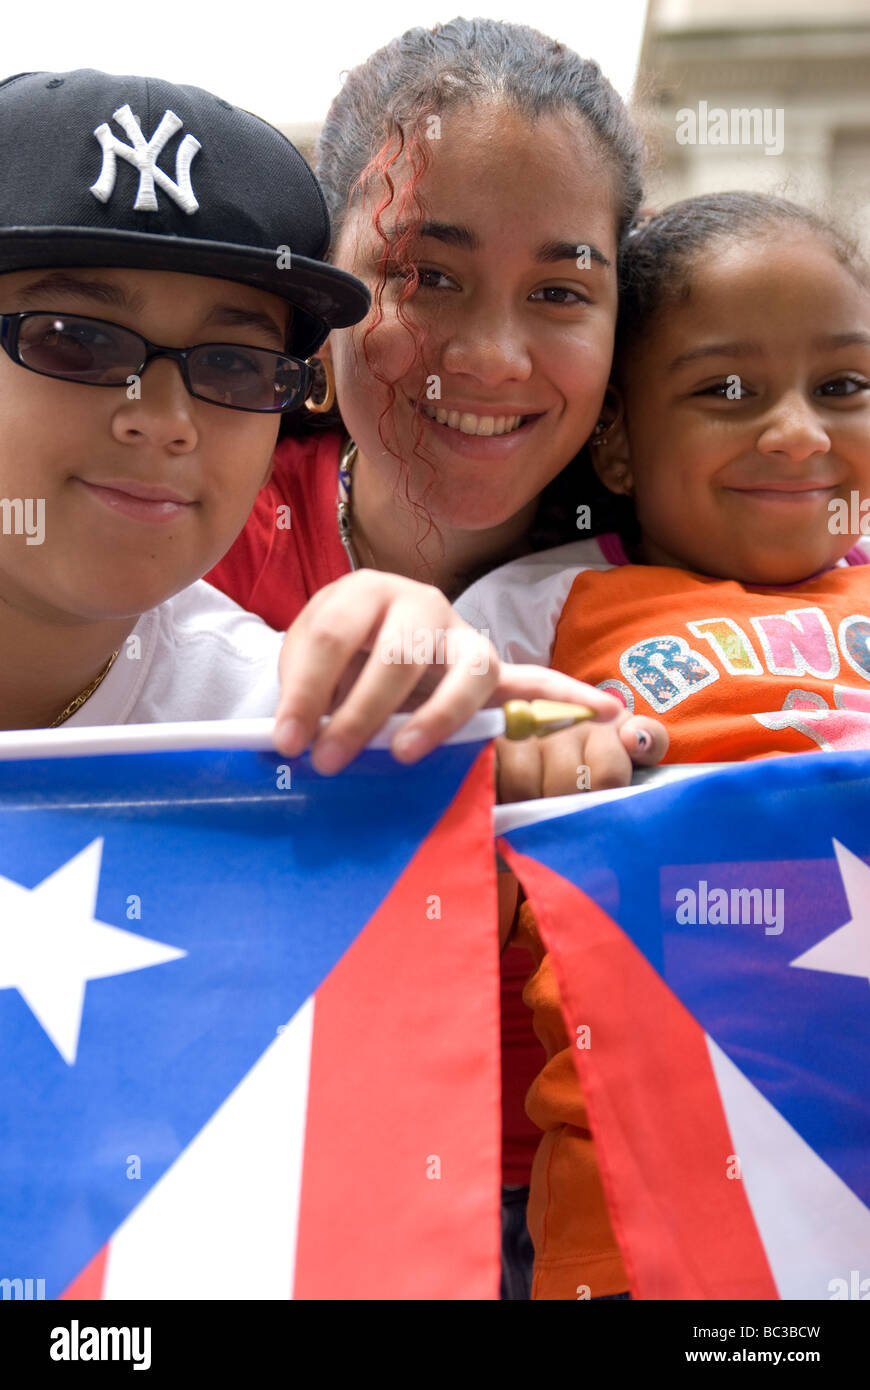 Annual Puerto Rican Day Parade.  5th Avenue, Manhattan, New York City. A colorful and exciting celebration. - Stock Image